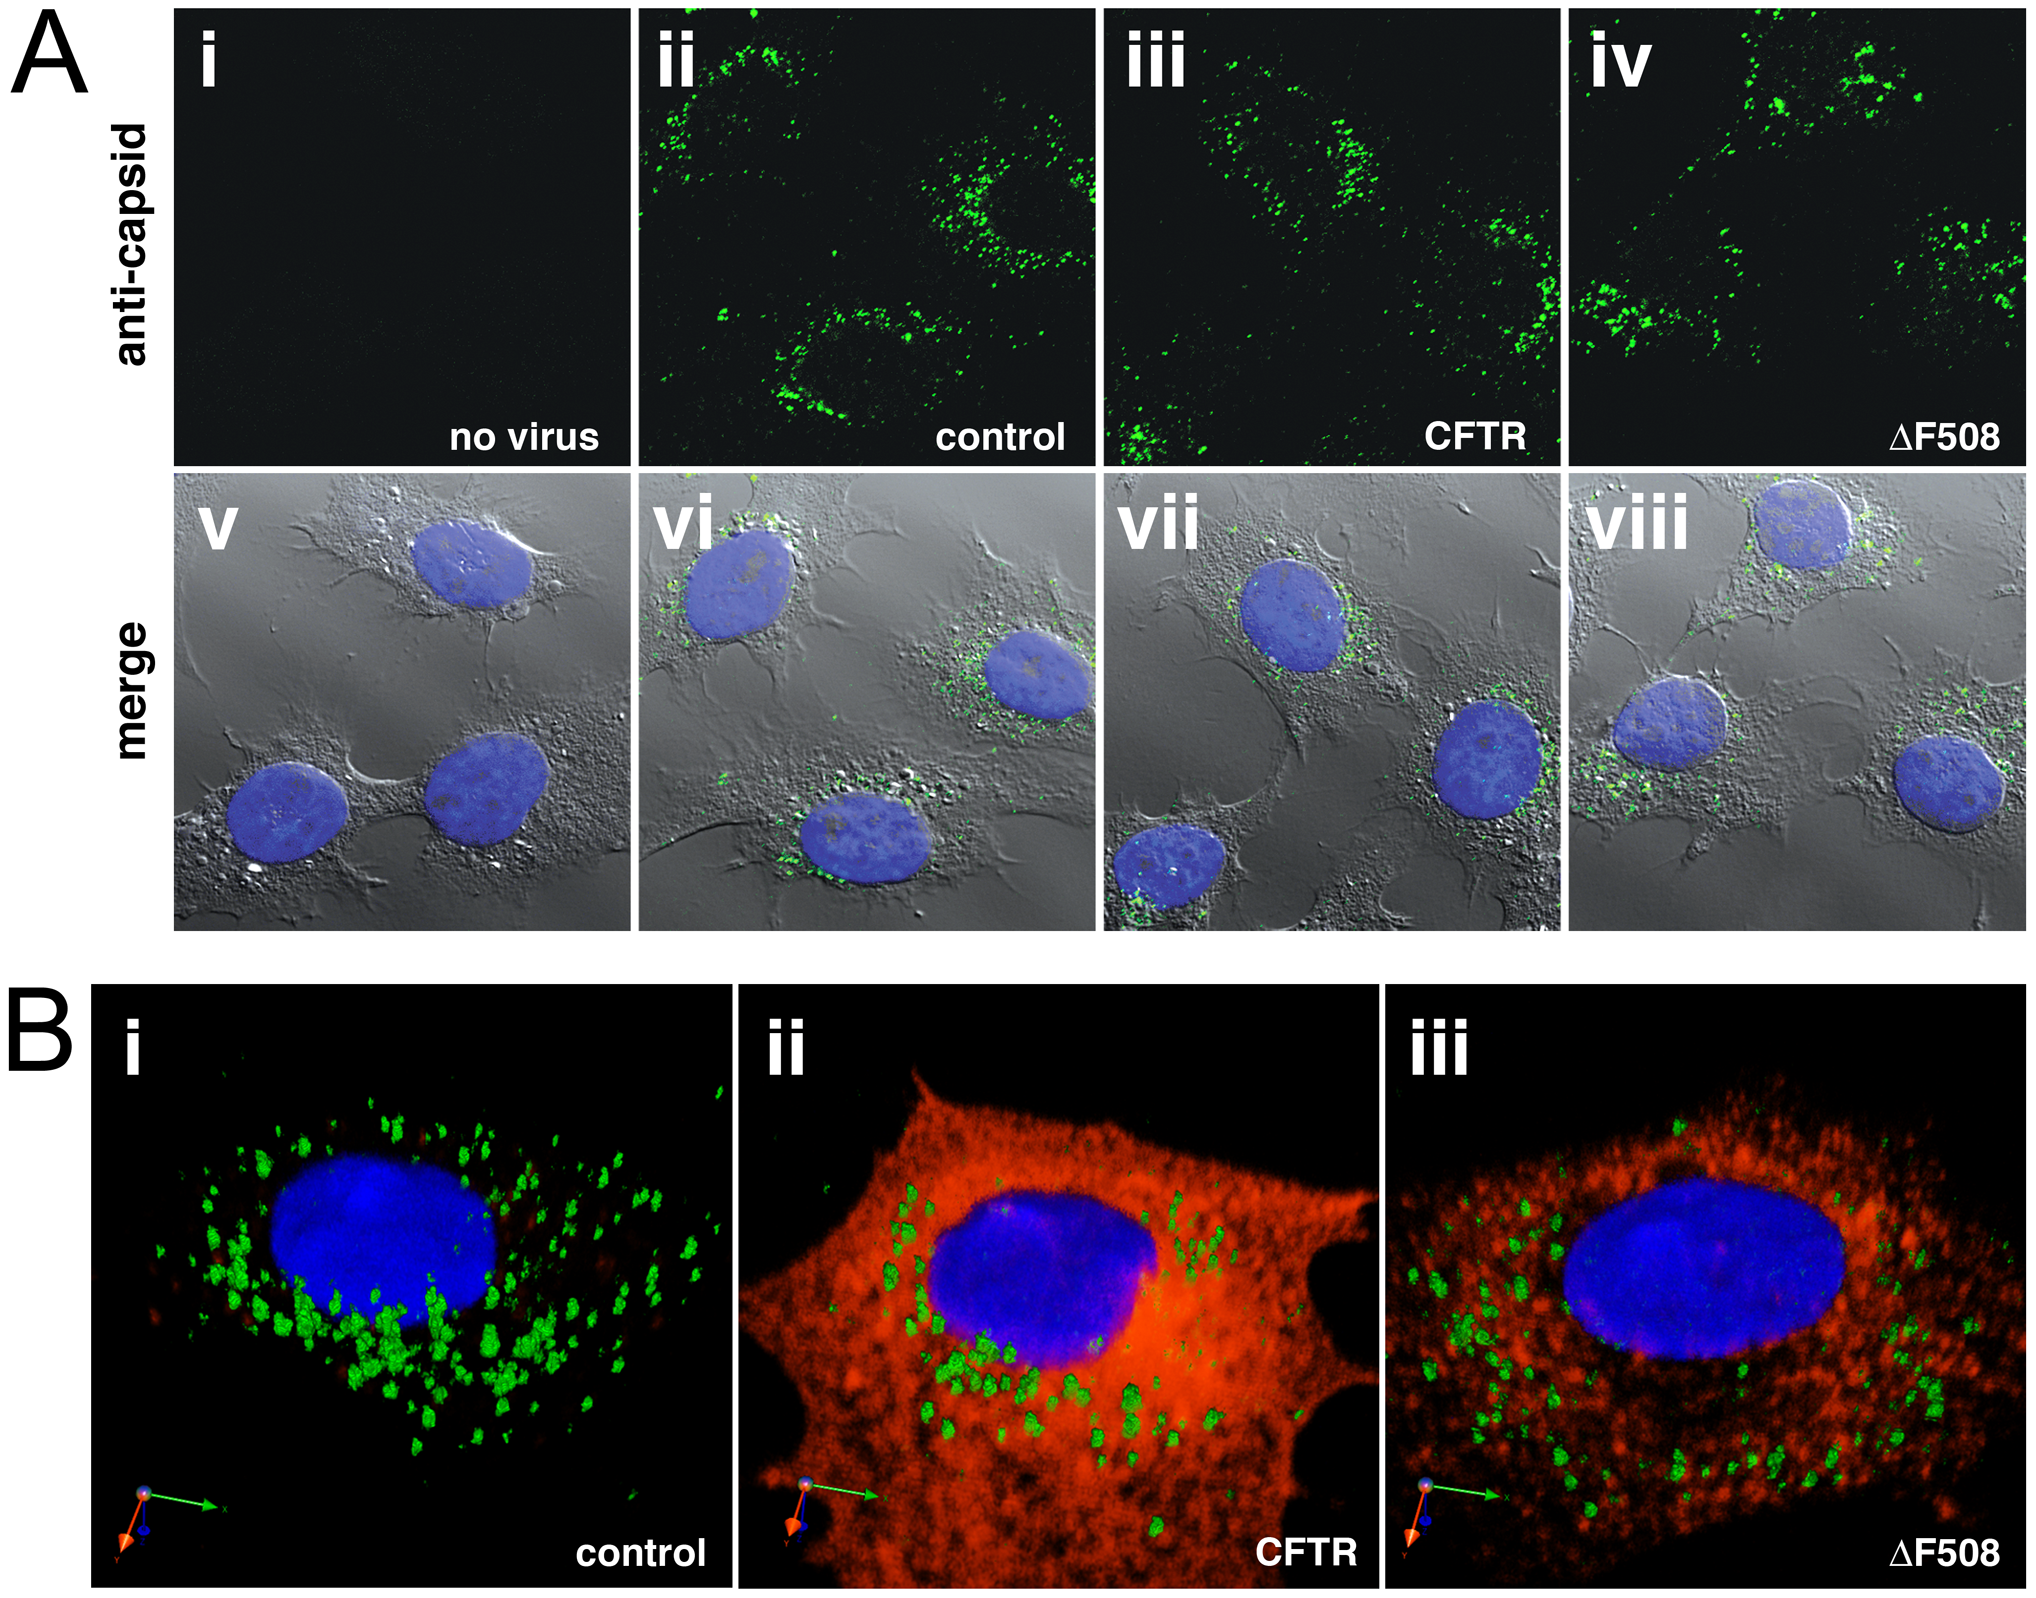 Perinuclear accumulation of AAV capsids in control, CFTR, or ΔF508-CFTR cells.